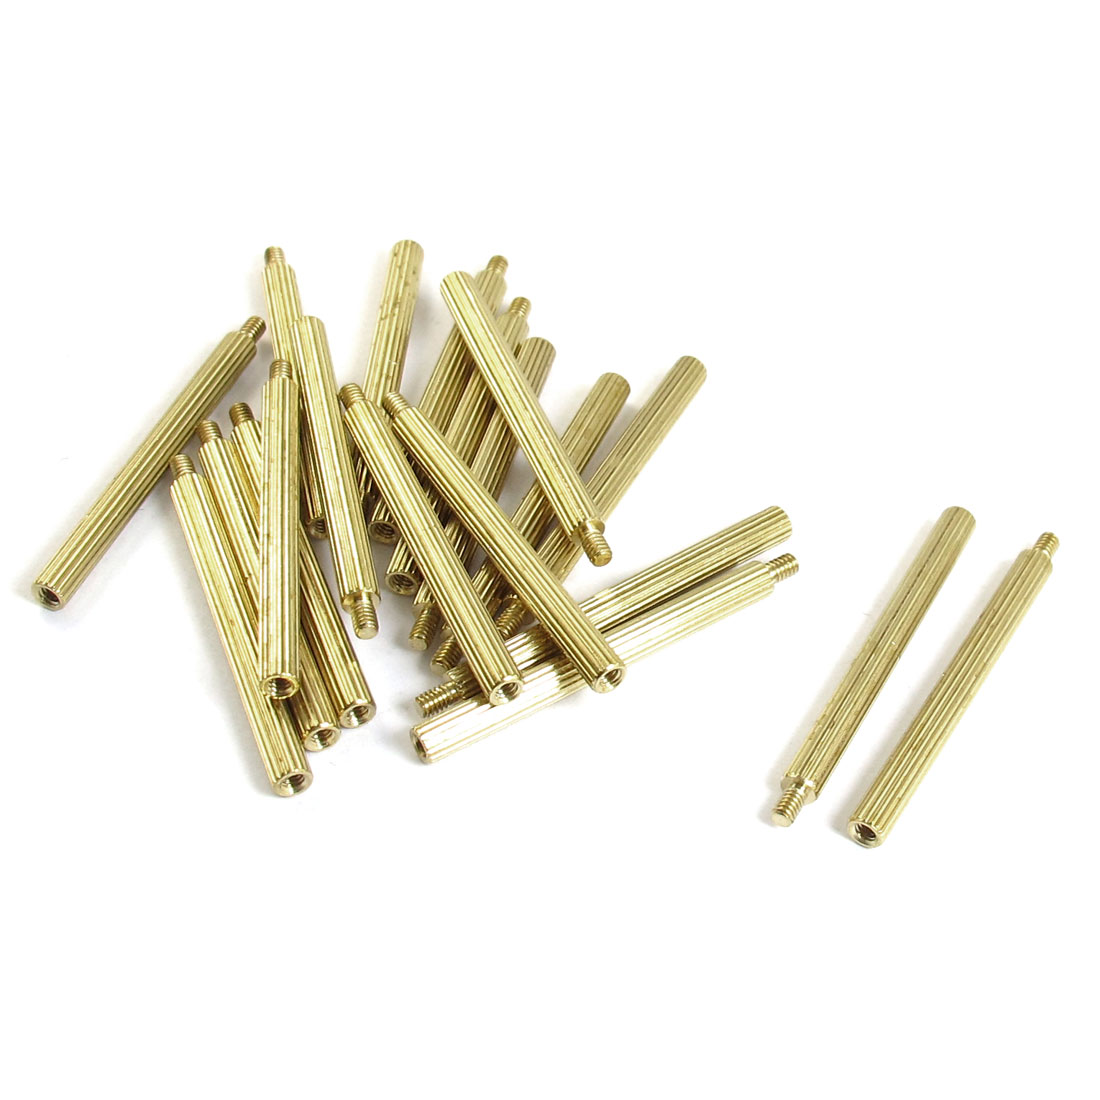 20 Pcs Male to Female Thread Brass Pillars Standoff Spacer M2x32mmx35mm